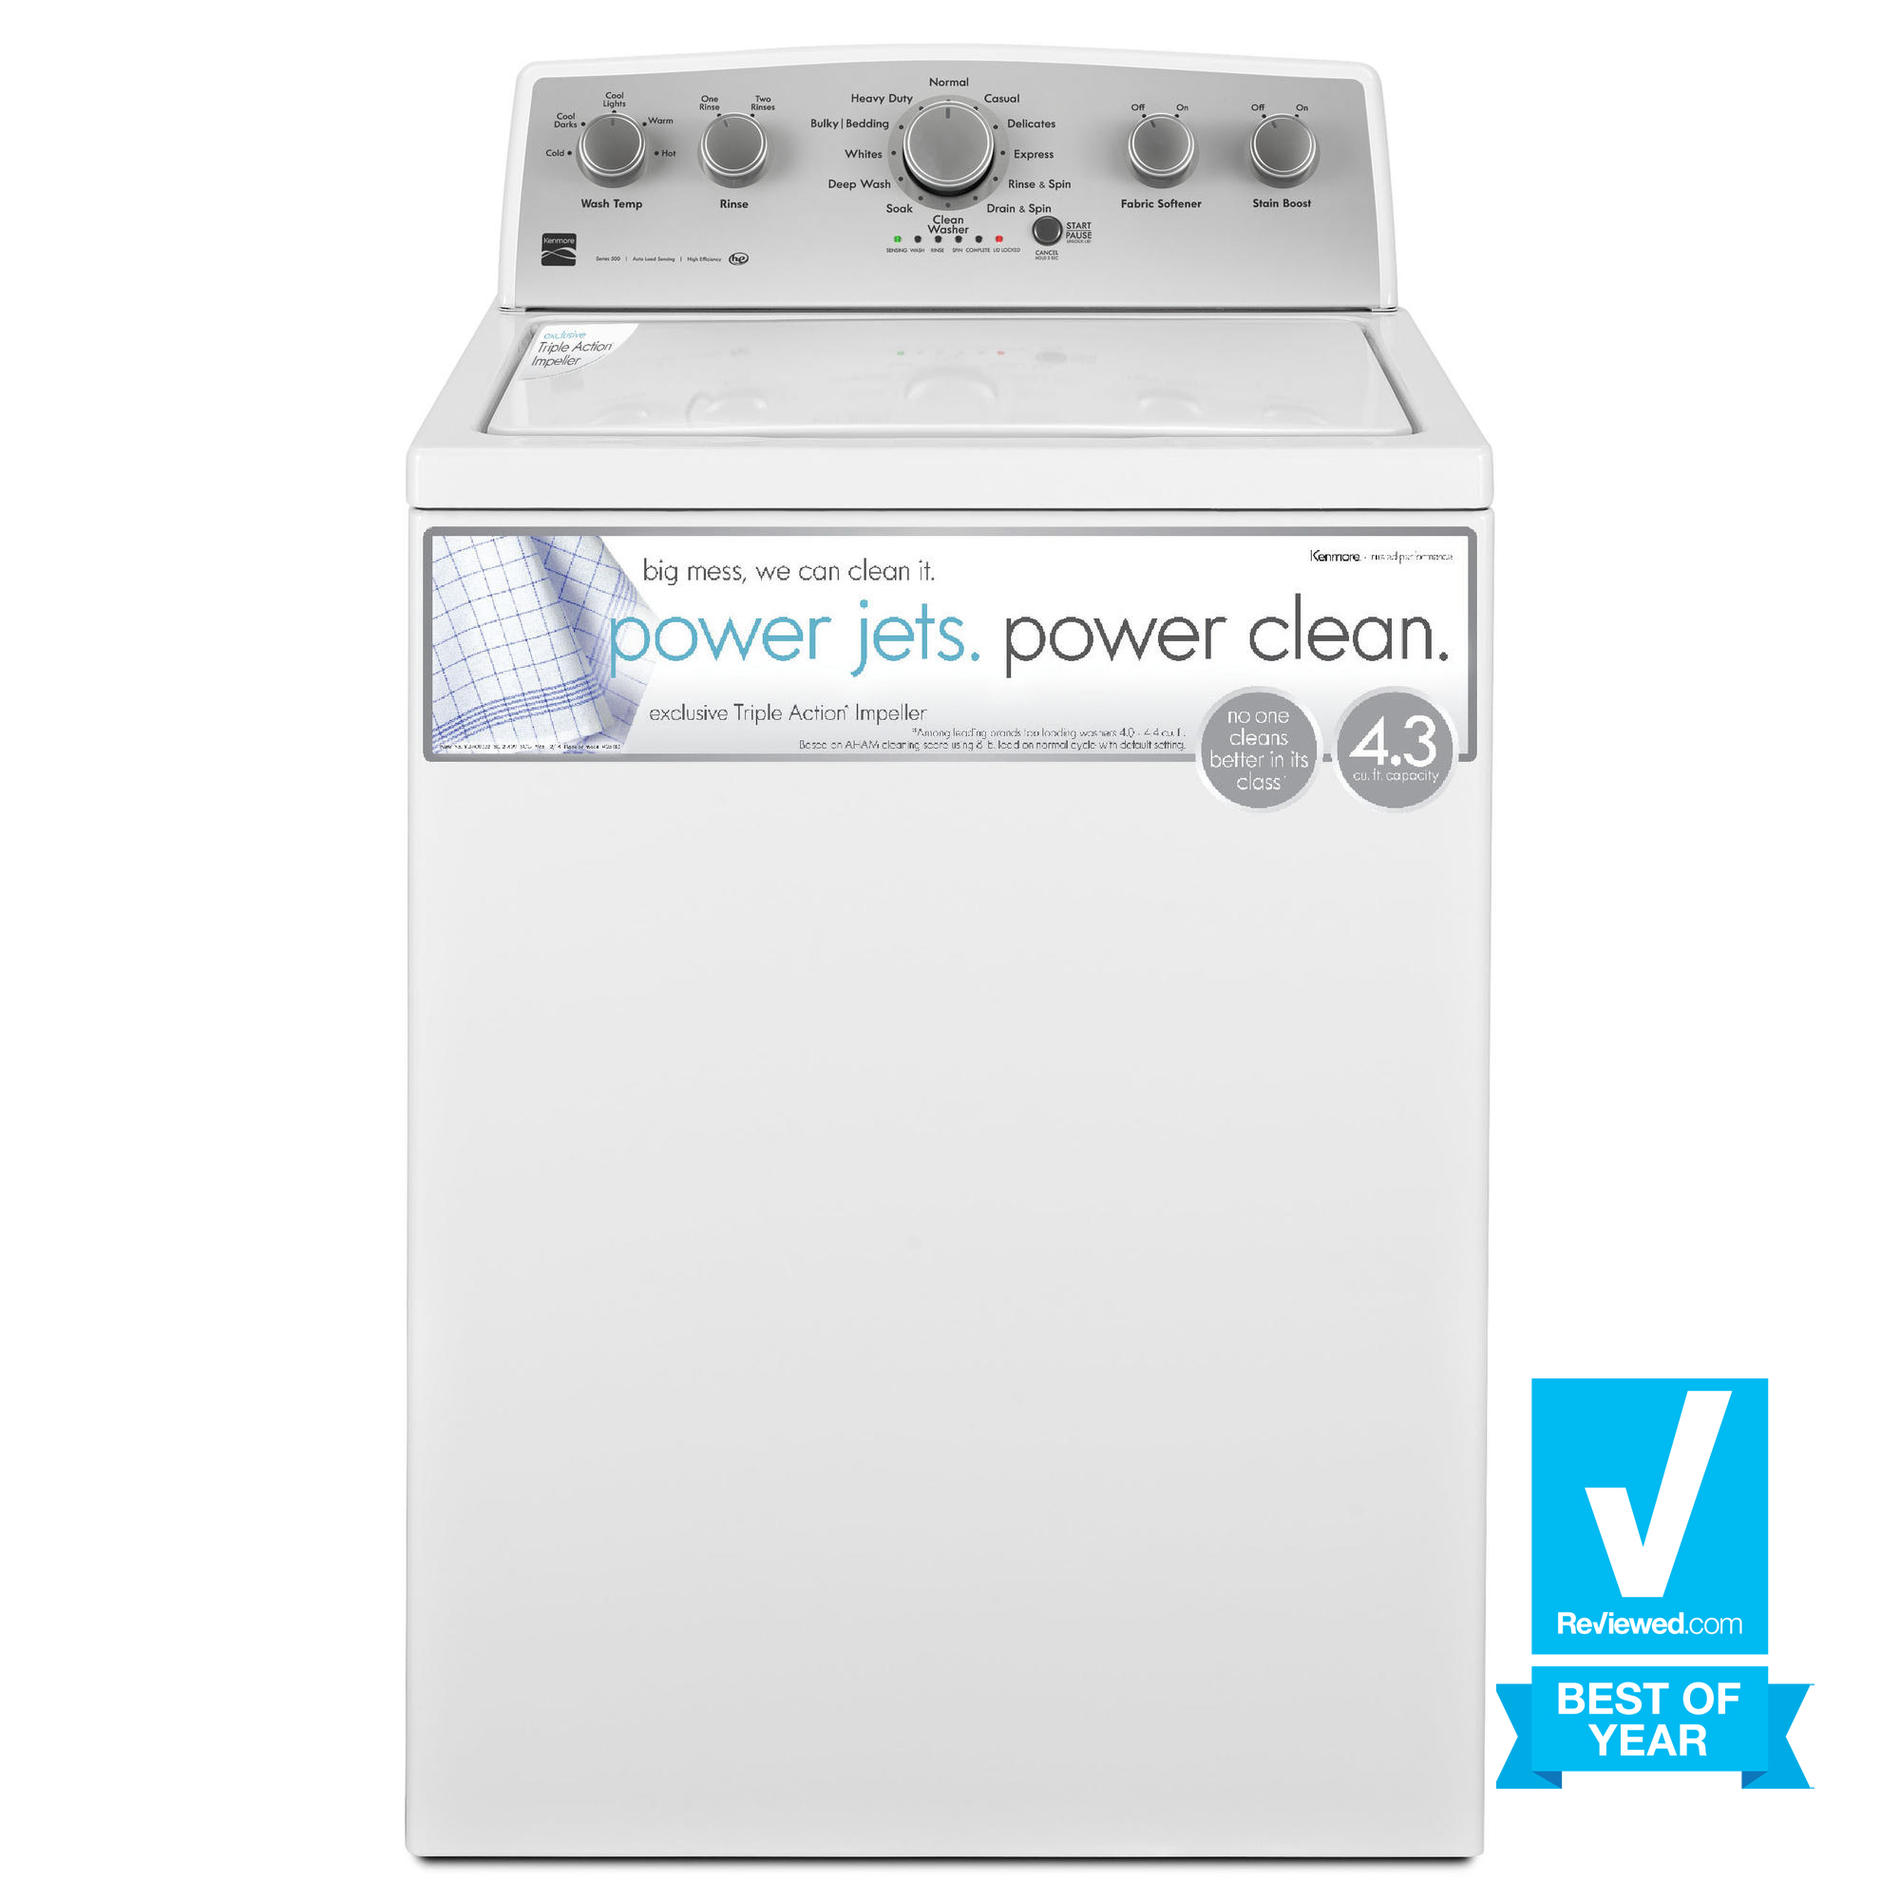 Kenmore 25132 4.3 cu. ft. Top Load Washer w/ Exclusive Triple® Action Impeller - White